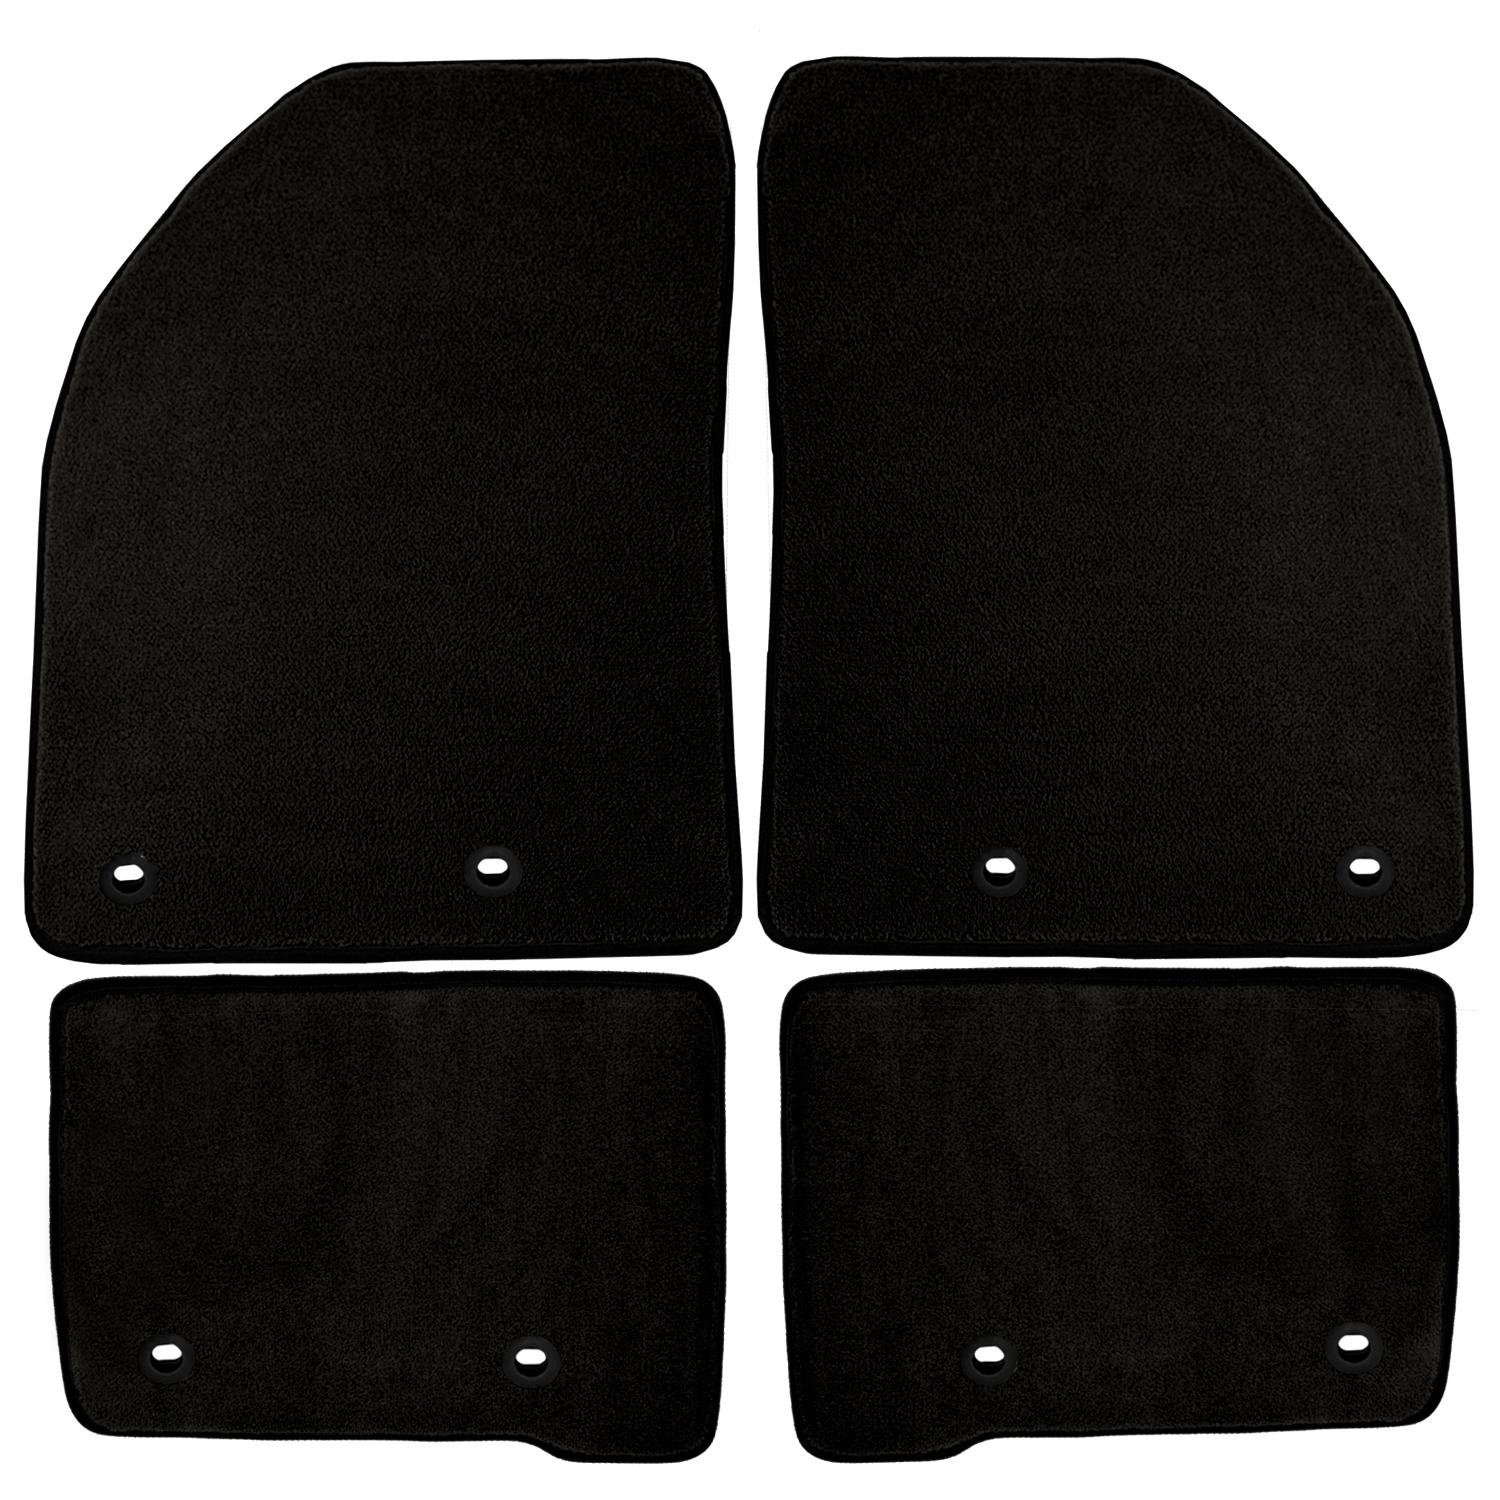 Nylon Carpet Coverking Custom Fit Front Floor Mats for Select GMC Terrain Models Black